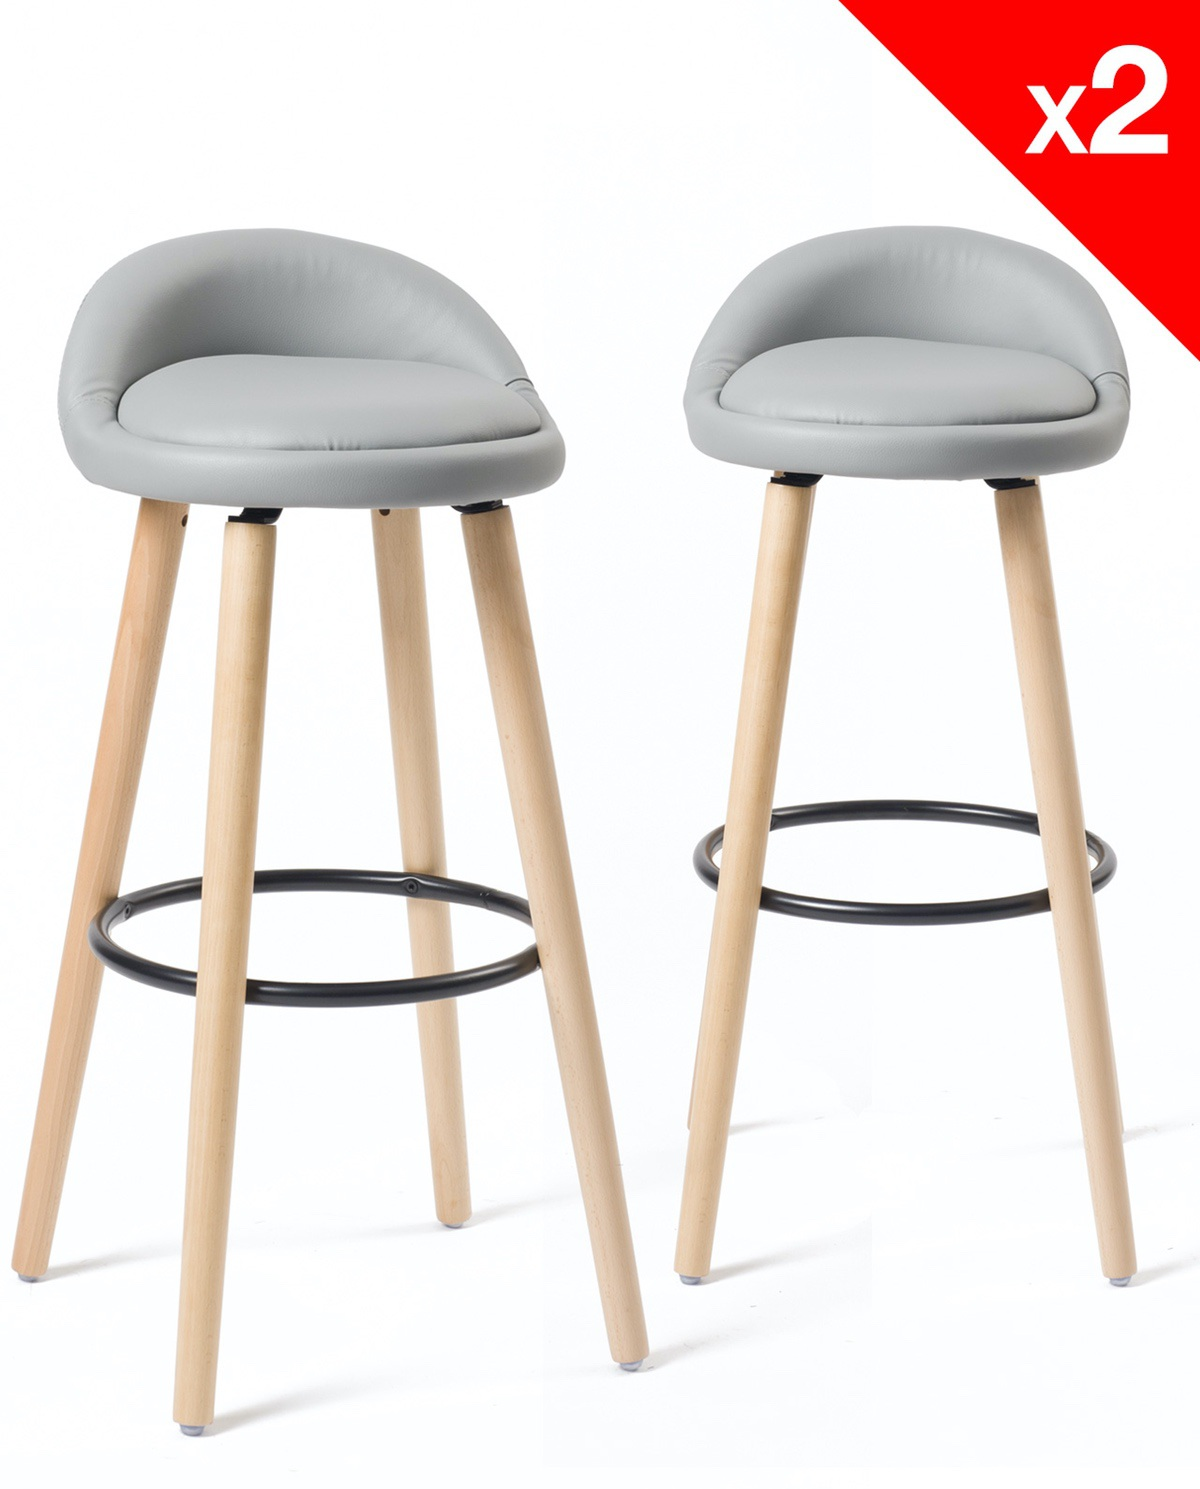 Tabouret De Bar Gris Clair Sata Tabourets De Bar Scandinaves Lot De 2